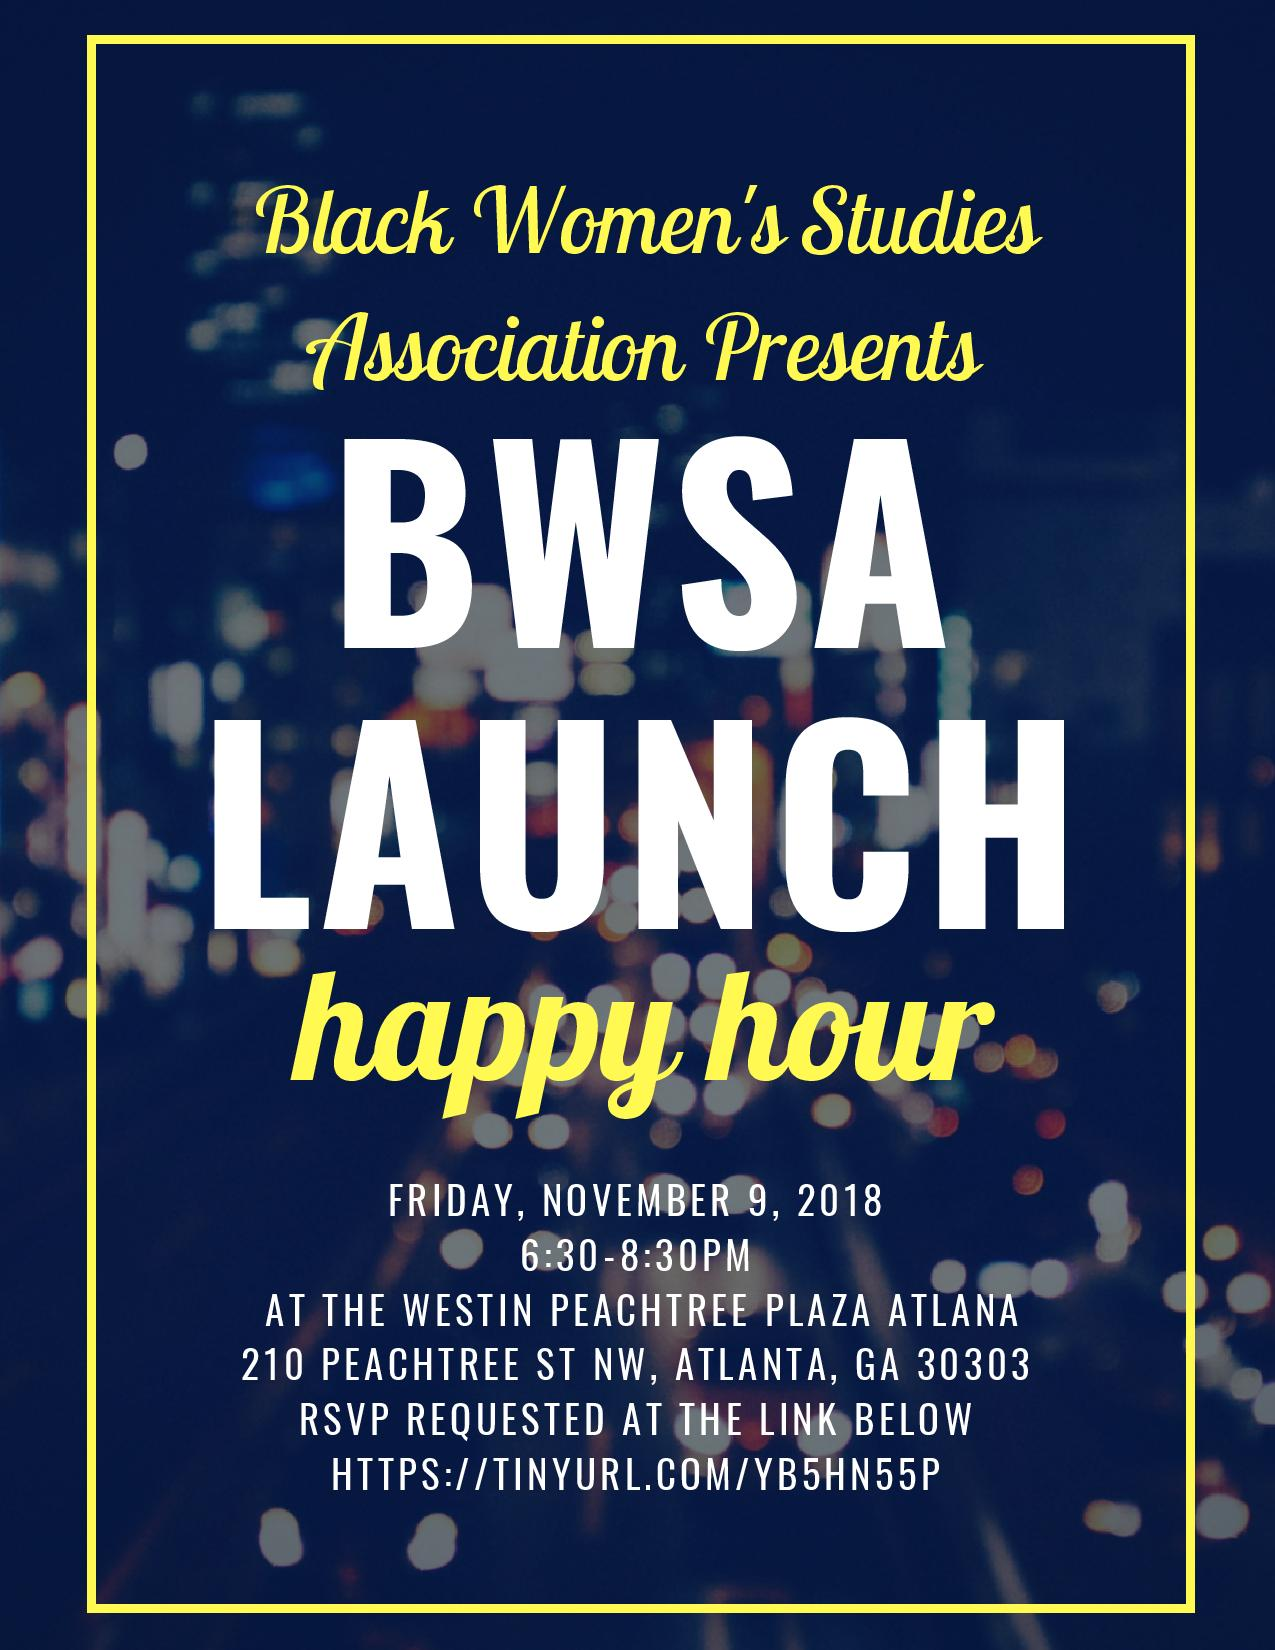 BWSA Launch Flyer.jpg